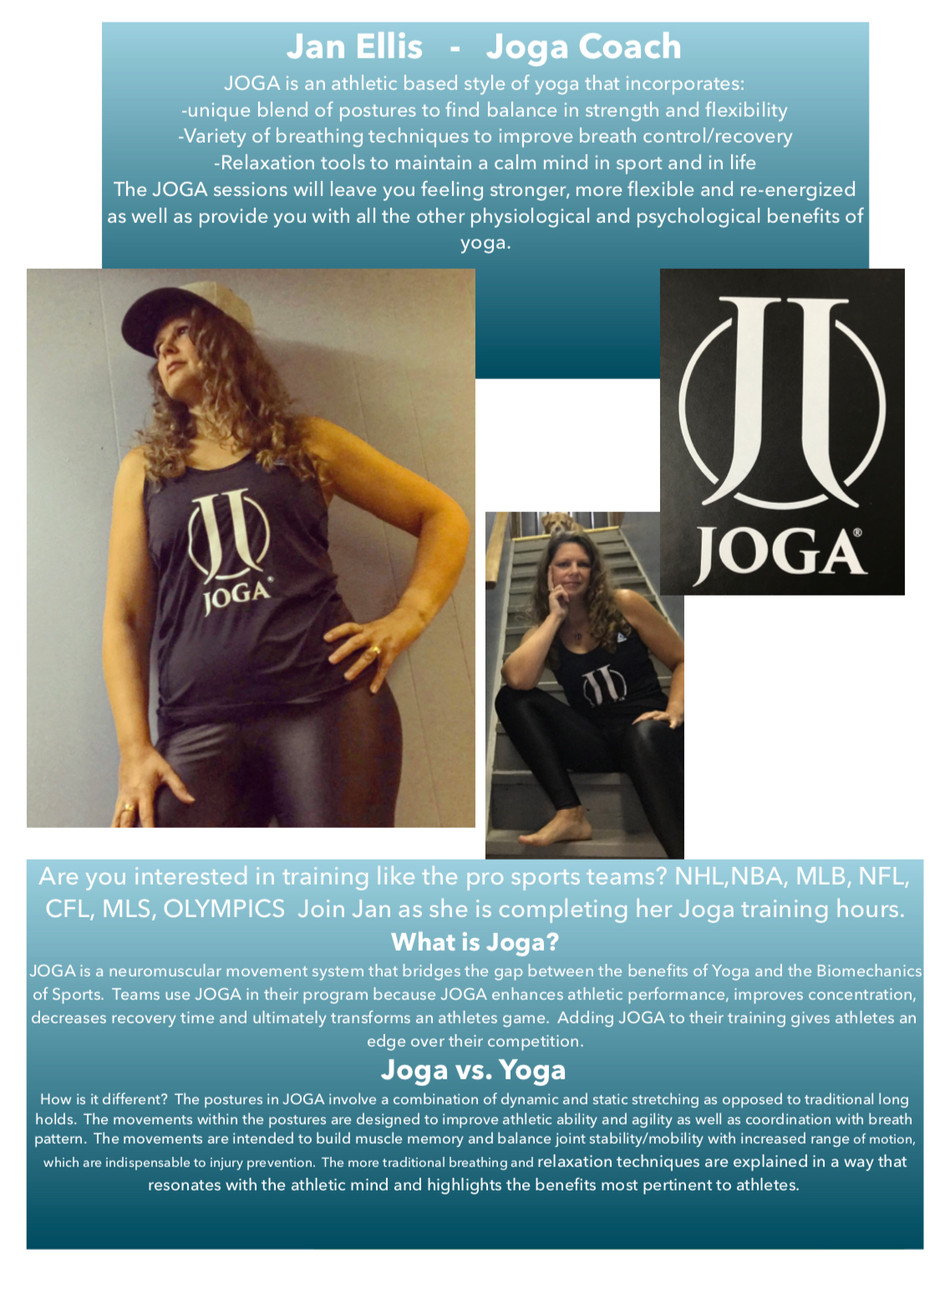 Joga with Jan